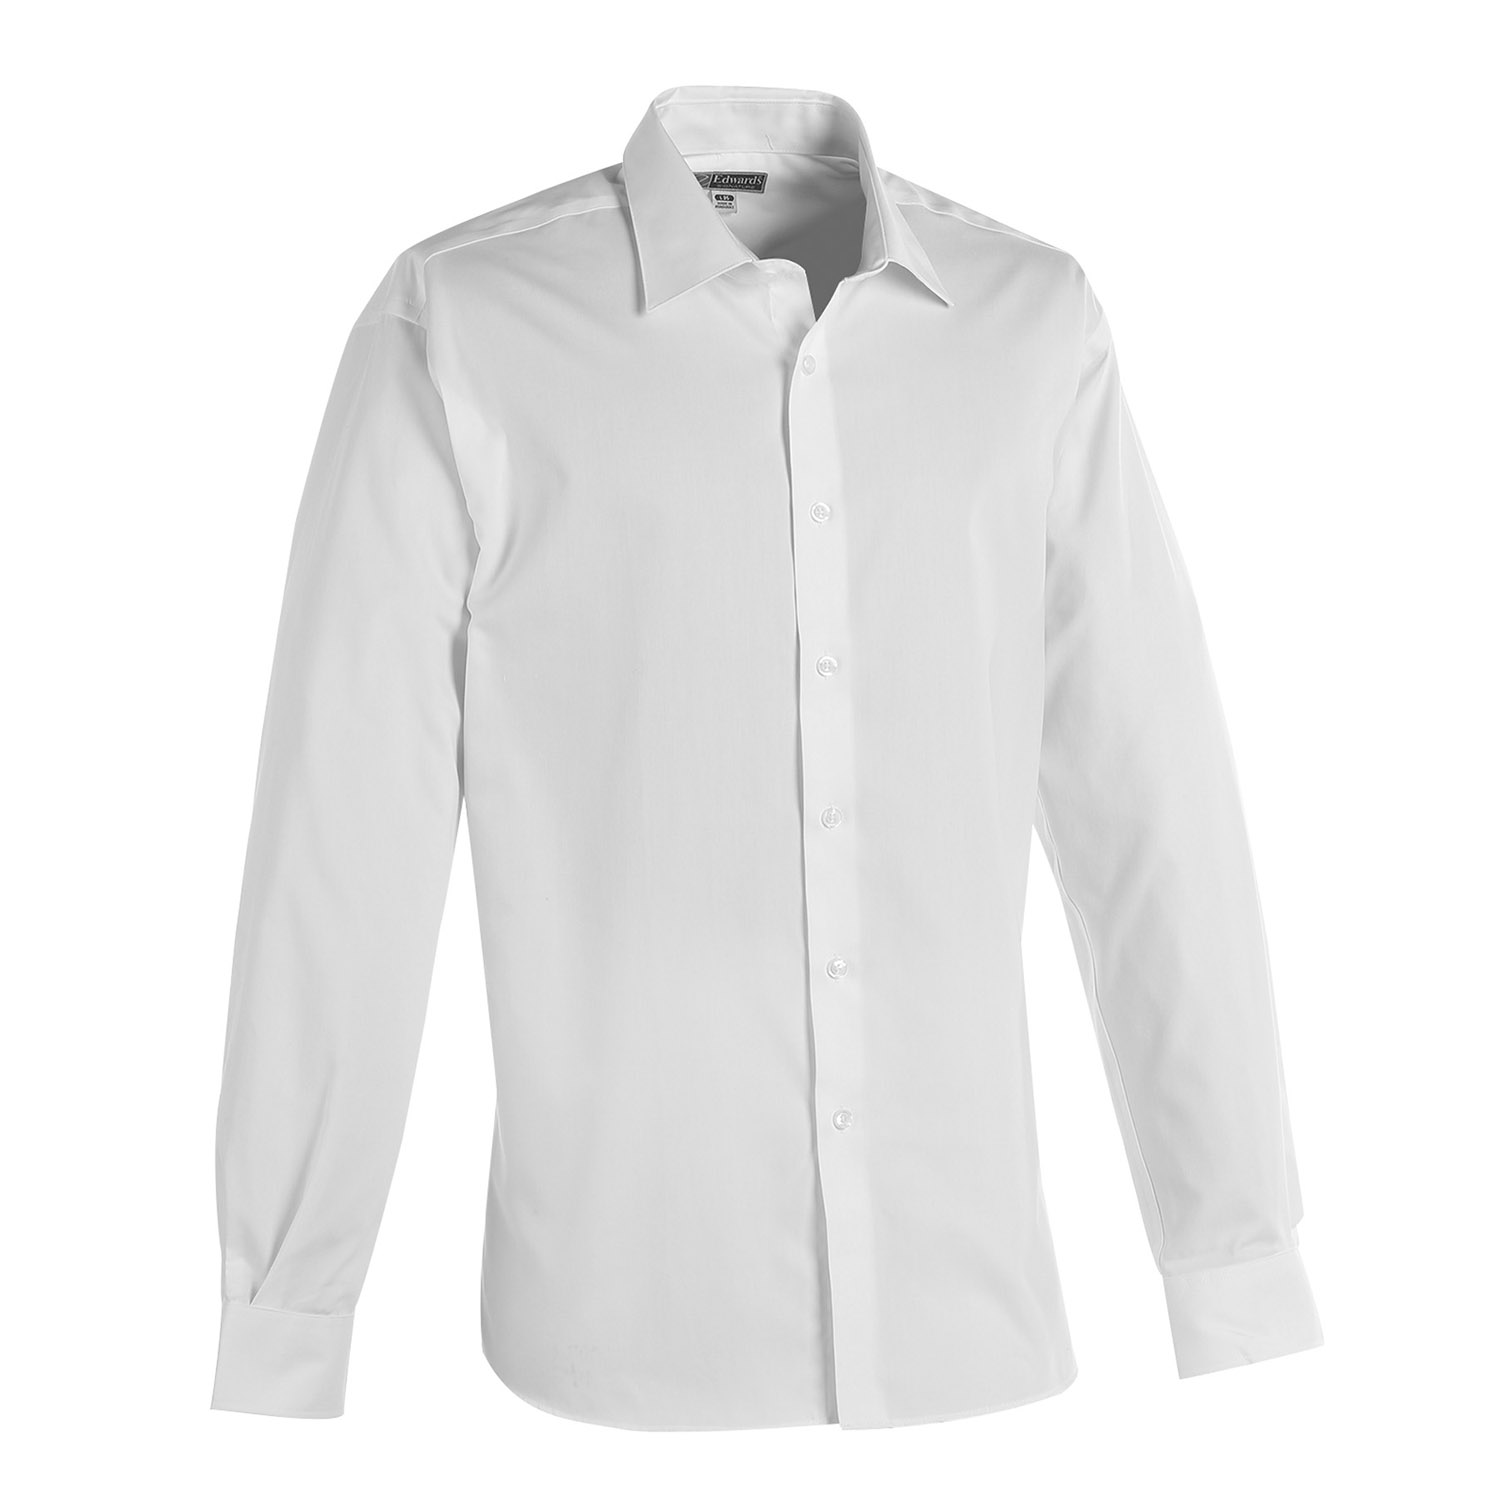 Edwards Men's Signature Non Iron Dress Shirt